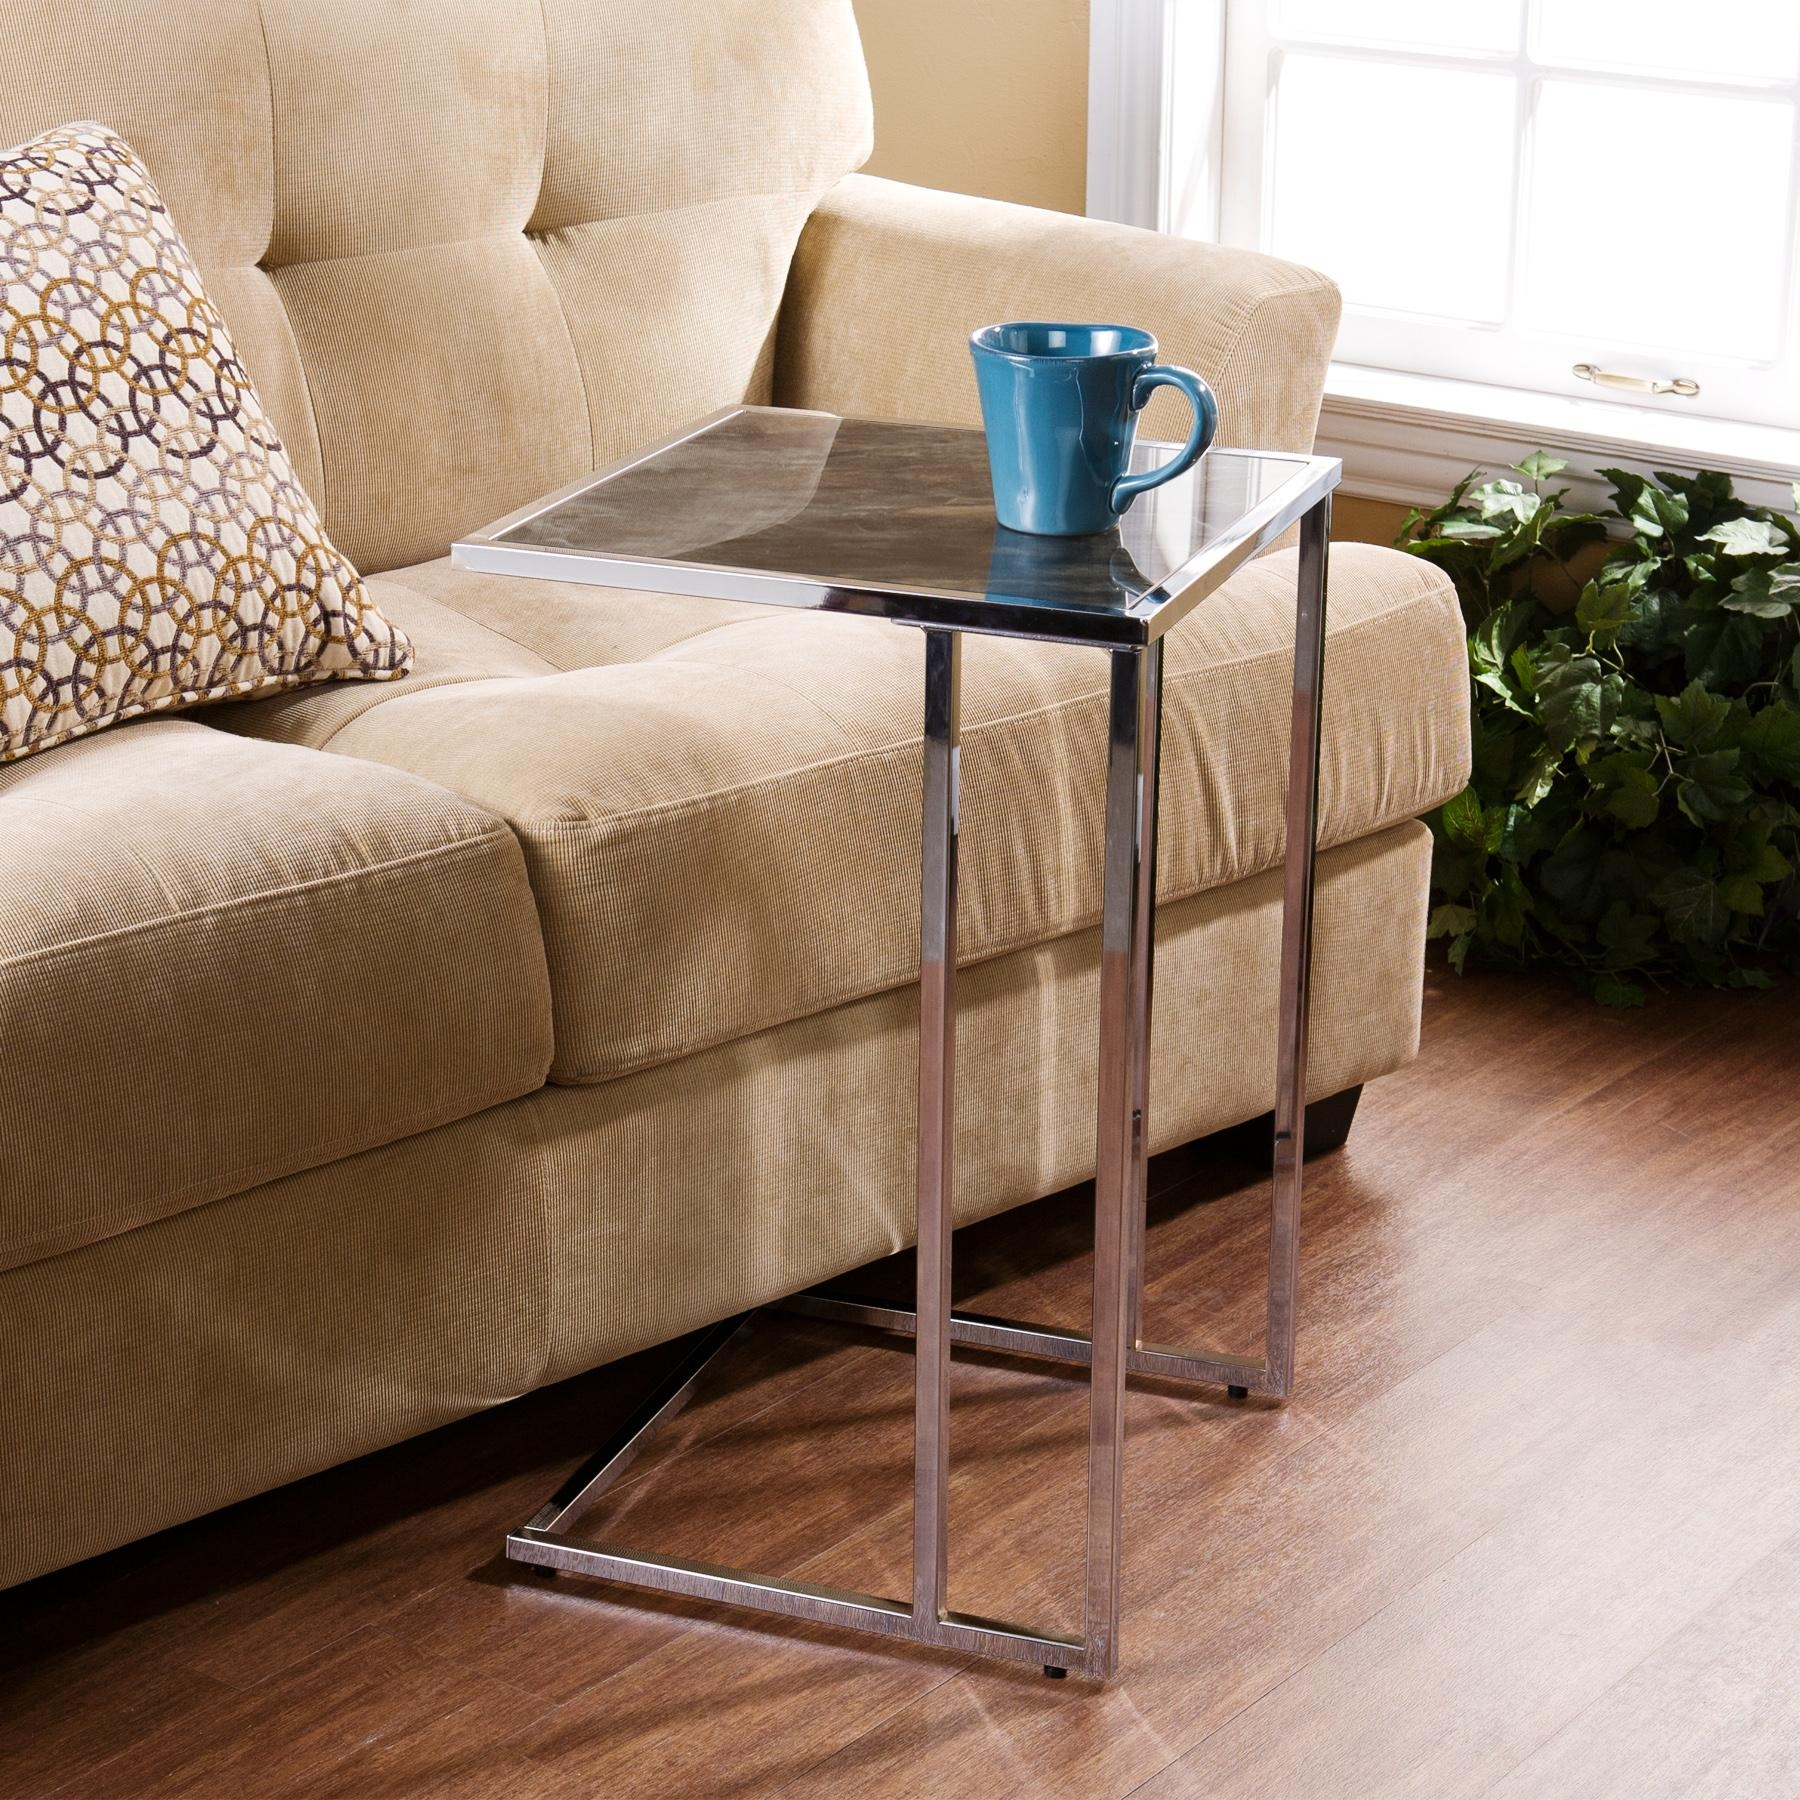 Attractive Snack Table With Slick Square Table Top Combined With Regard To Under Sofa Tray Tables (Image 1 of 20)